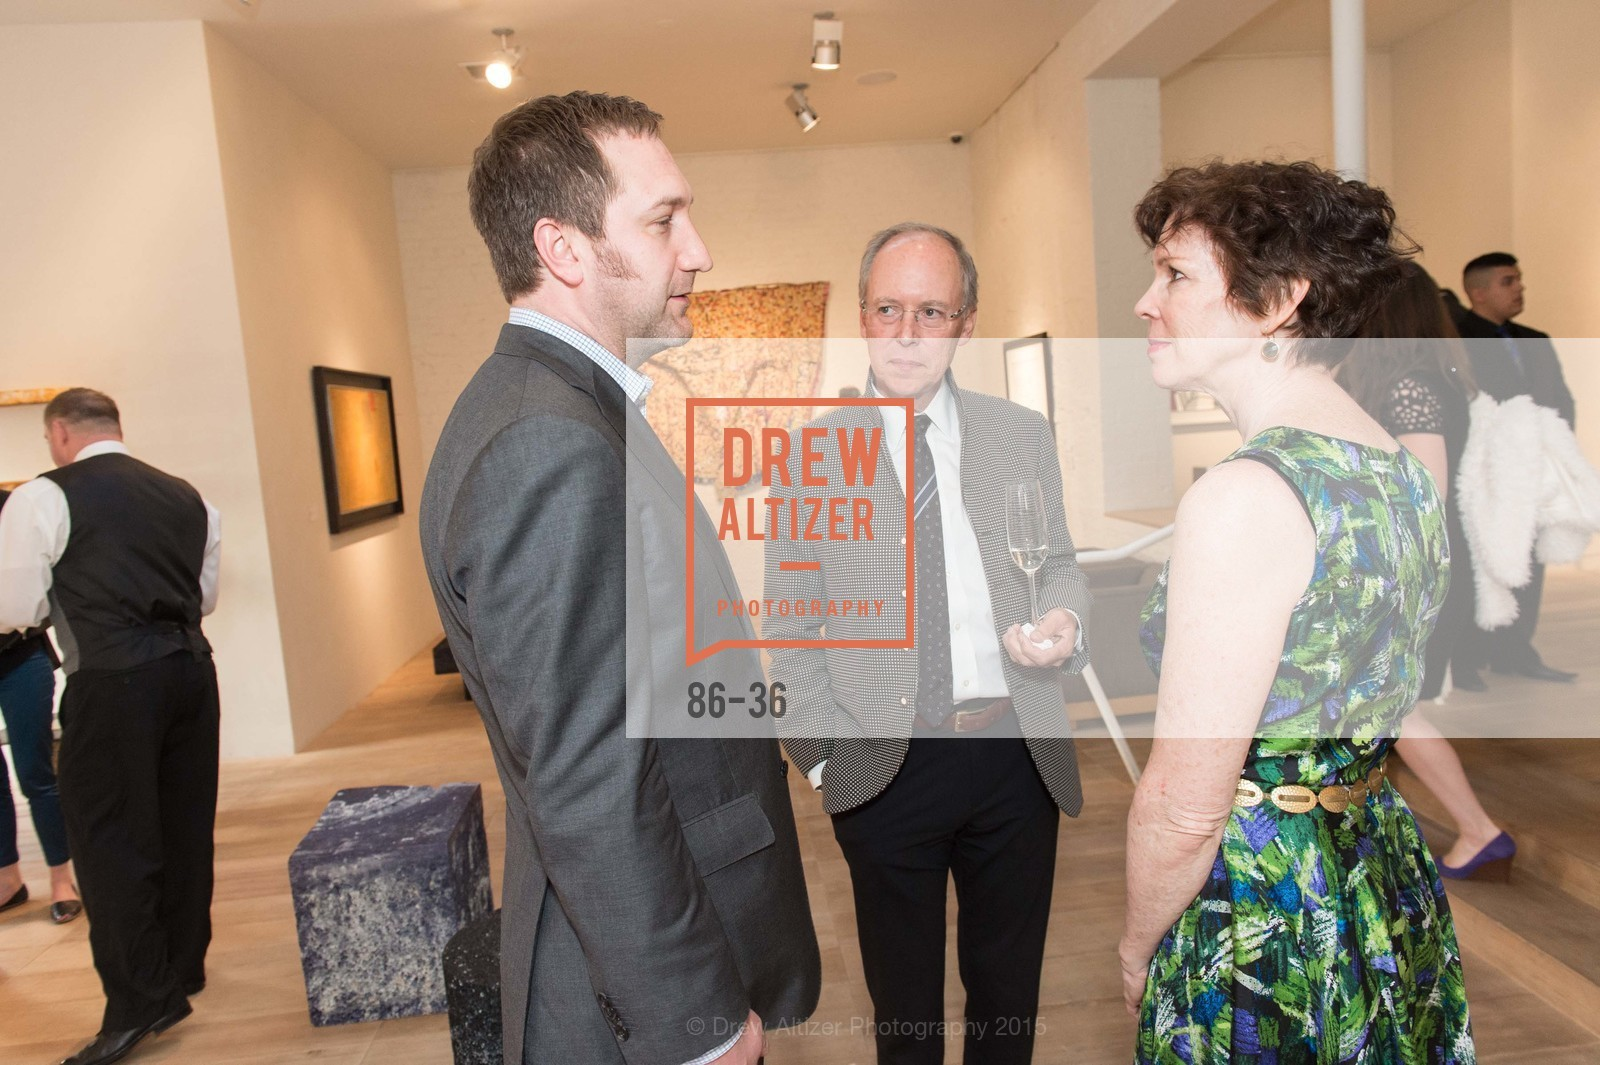 Jonathan Laib, Charles Desmarais, Kitty Morgan, Post War and Contemporary preview at Hedge Gallery , Hedge Gallery. 501 Pacific Ave, San Francisco, CA 94133, April 16th, 2015,Drew Altizer, Drew Altizer Photography, full-service agency, private events, San Francisco photographer, photographer california